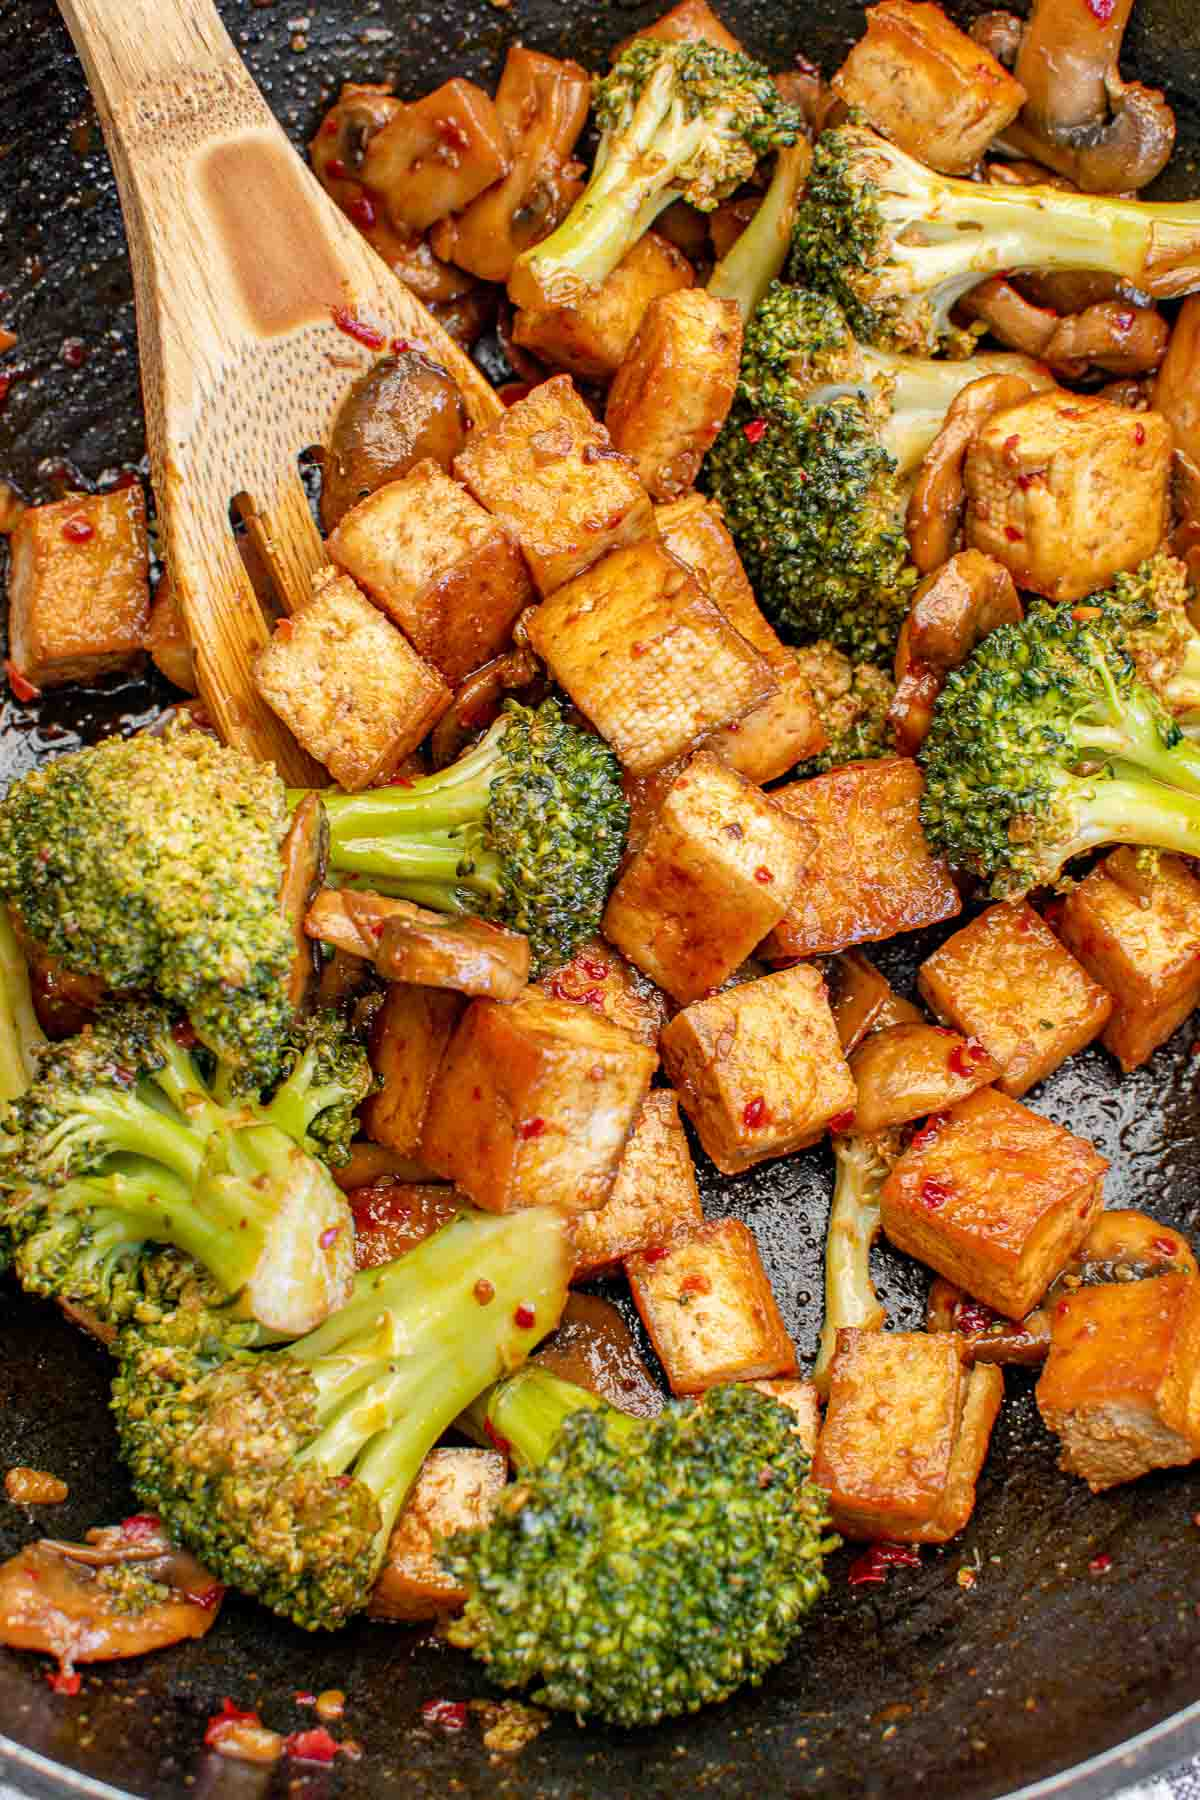 Broccoli and cubed fried tofu in a wok.